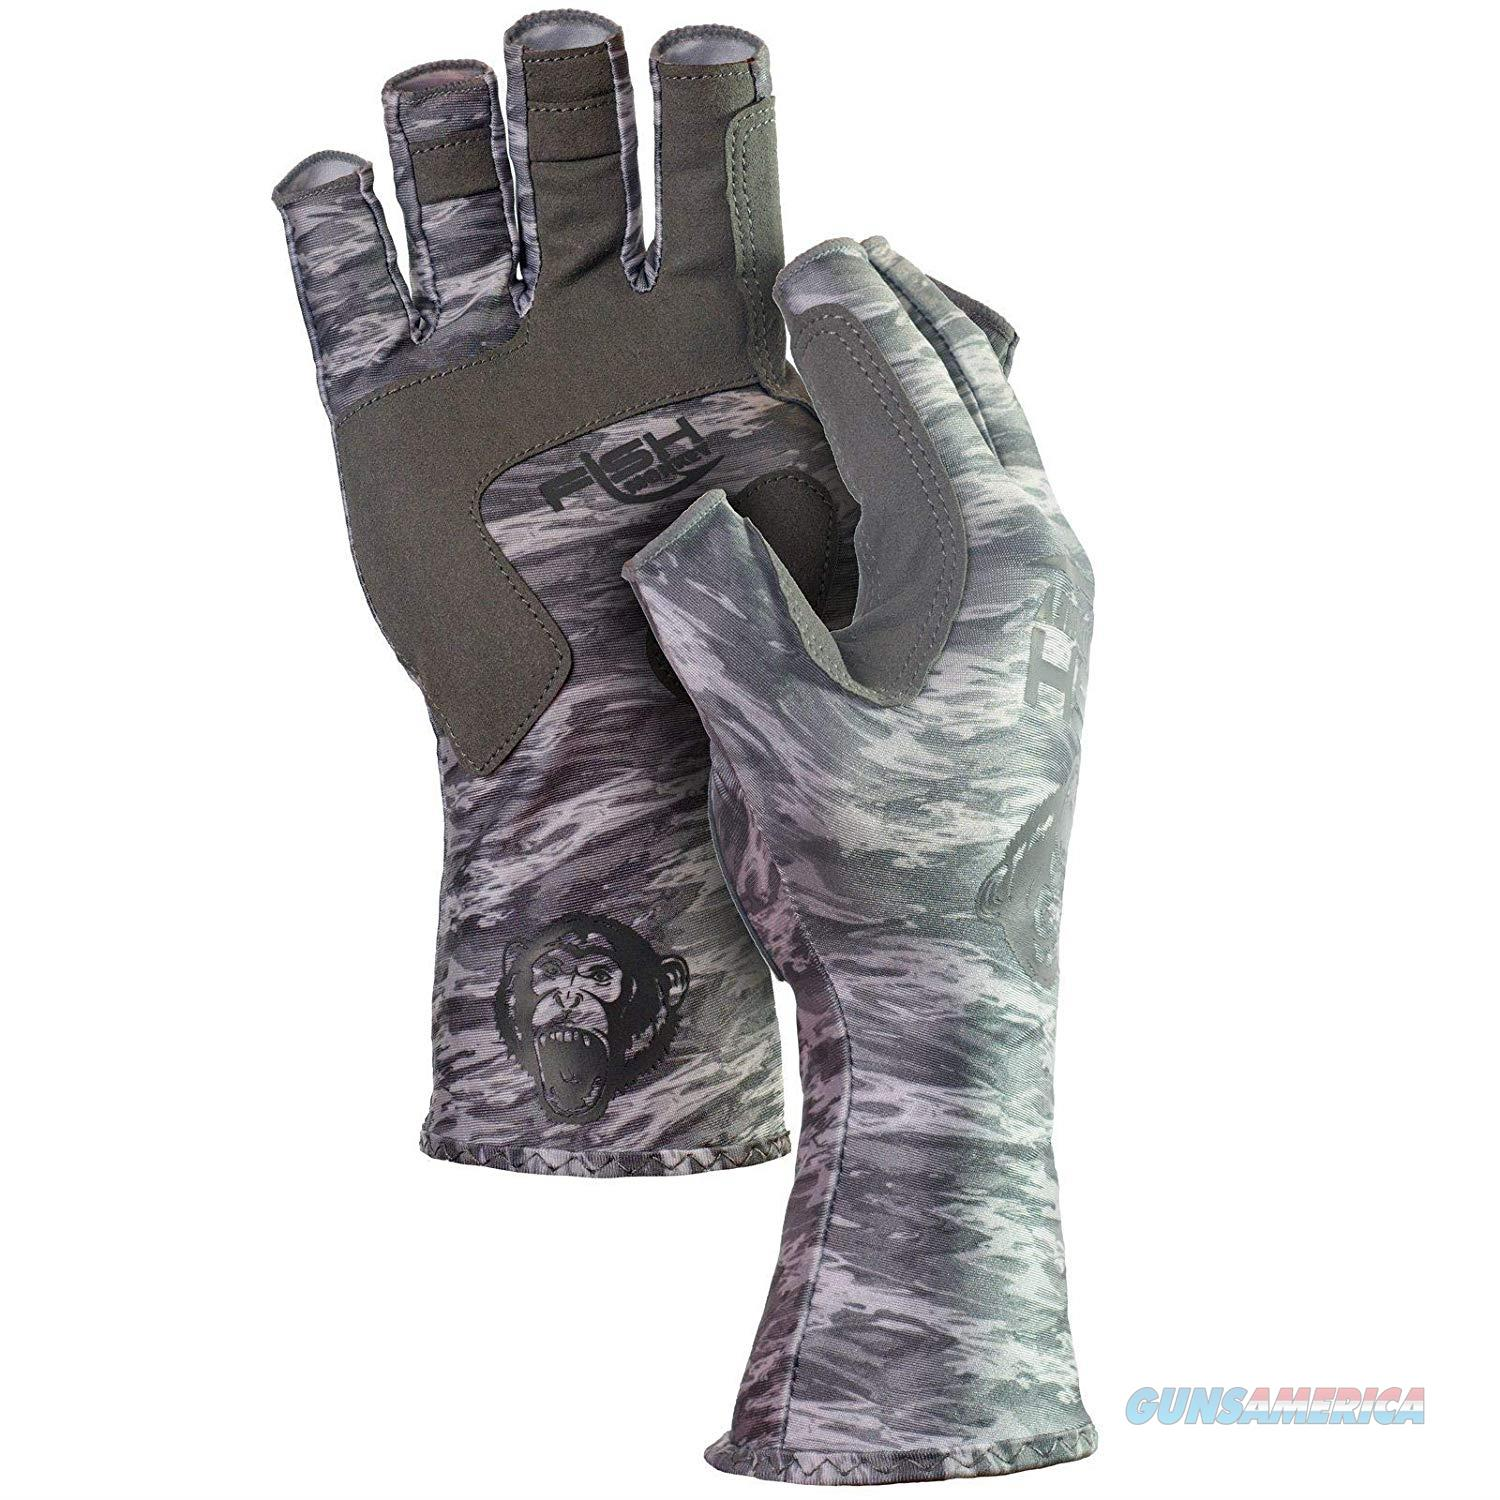 Fish Monkey Half Finger Guide Glove LG  Non-Guns > Hunting Clothing and Equipment > Clothing > Gloves